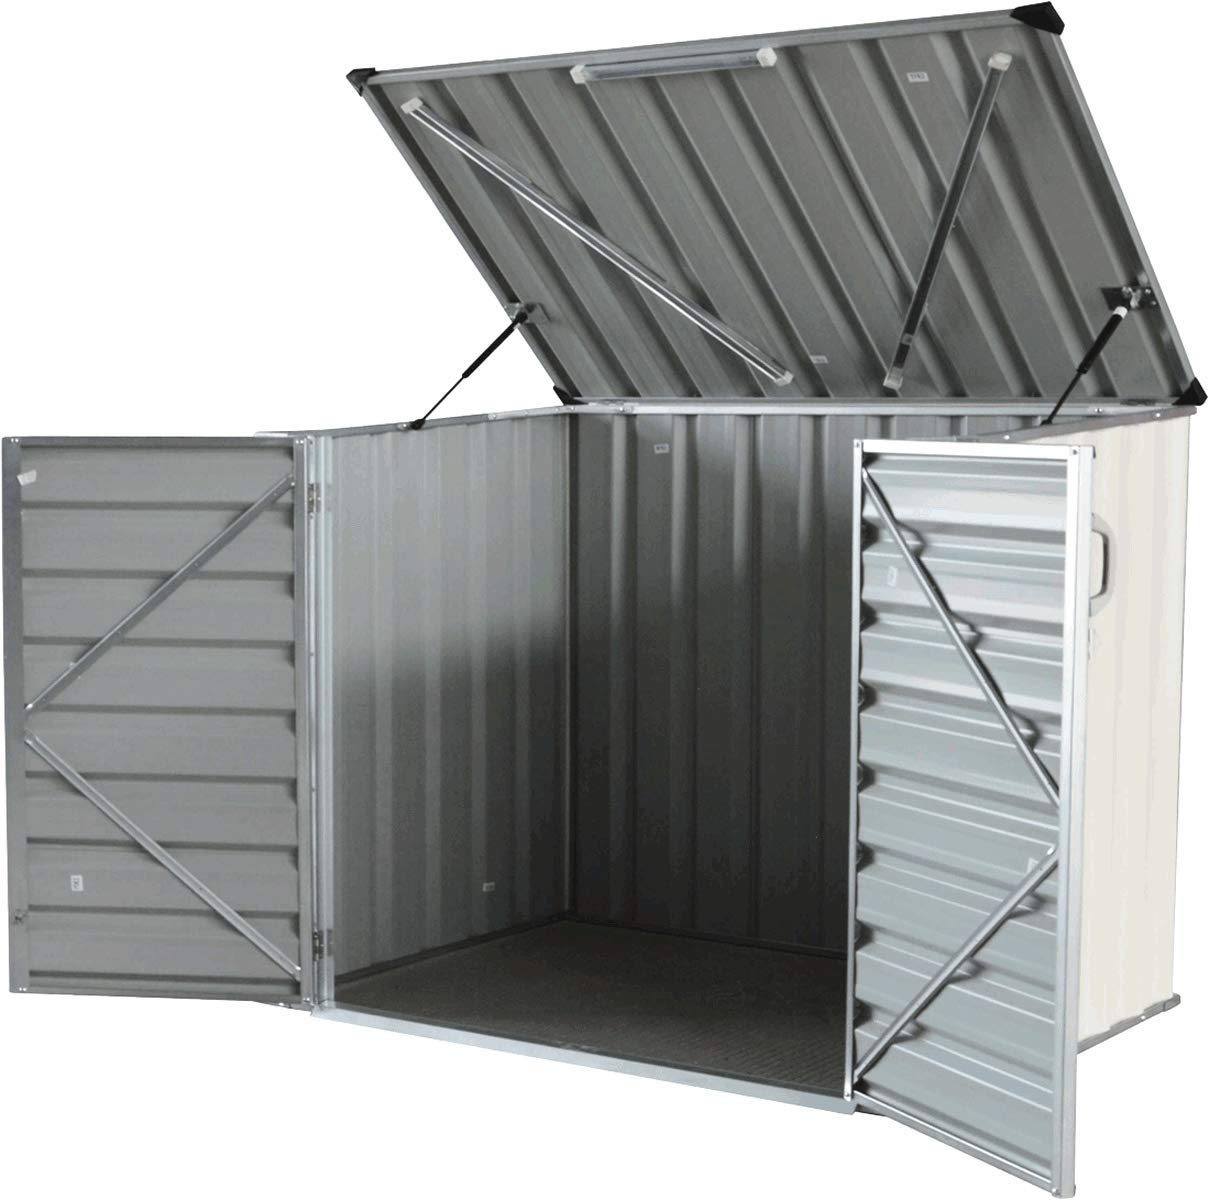 Click-Well 5x3 Metal Storage Shed. Low-Profile Horizontal, Ideal for Trash (2x64gal), Garden Tools, BBQ Grills, Firewood, Kid's Bikes/Outdoor Toys, Lawn Mower, Well Pump, Pool Pump/Filter, Animal Feed Kid's Bikes/Outdoor Toys CW0503-GSHSH-CM